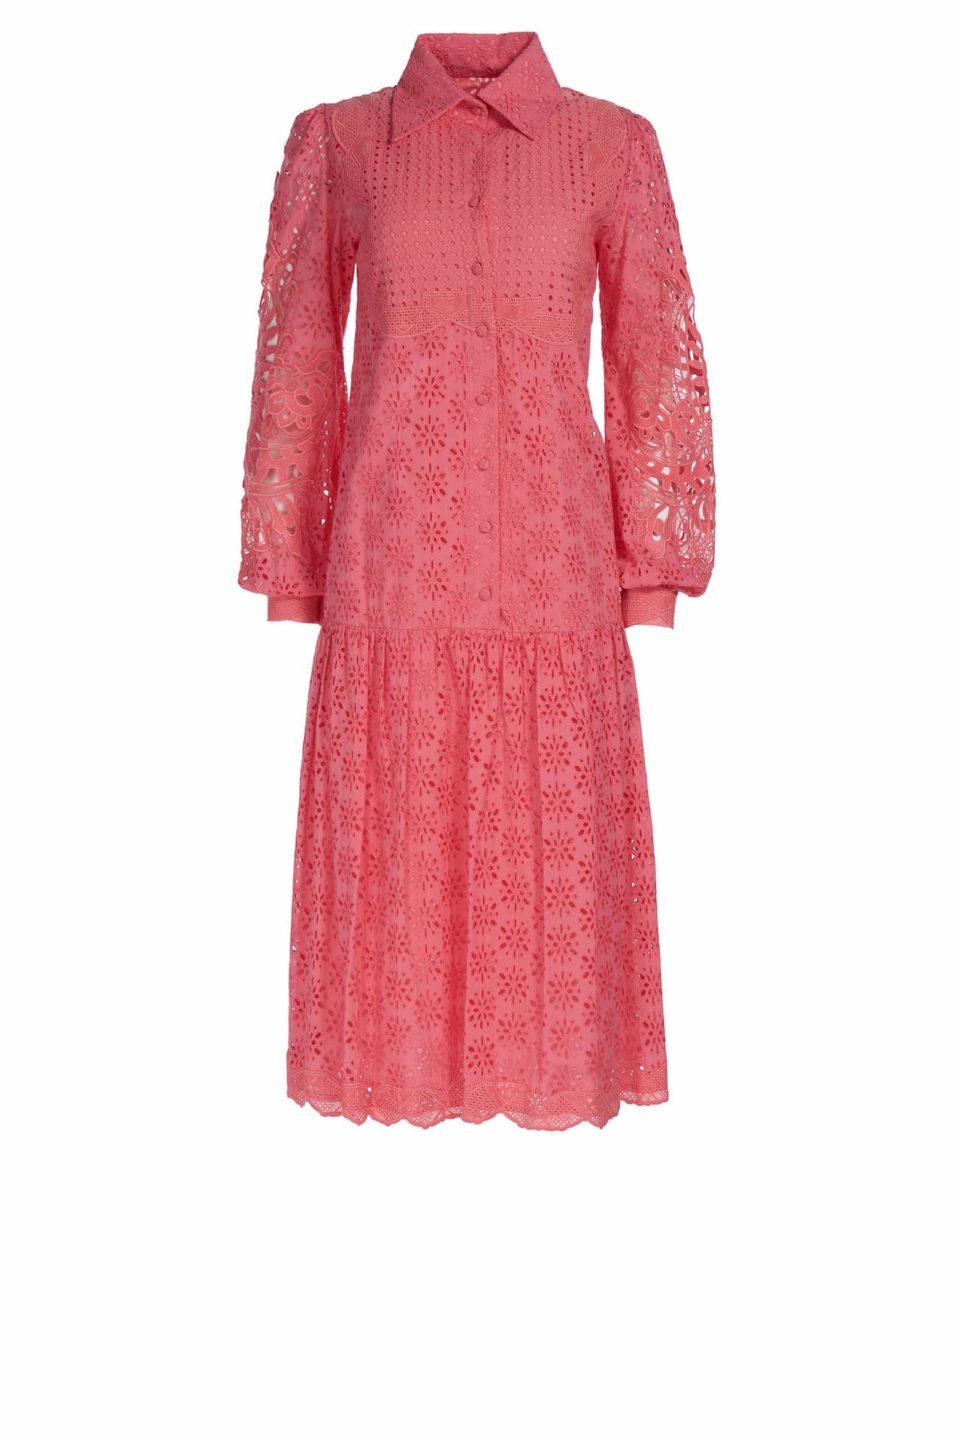 Twyla SS1943 Coral cotton broderie anglaise shirtdress